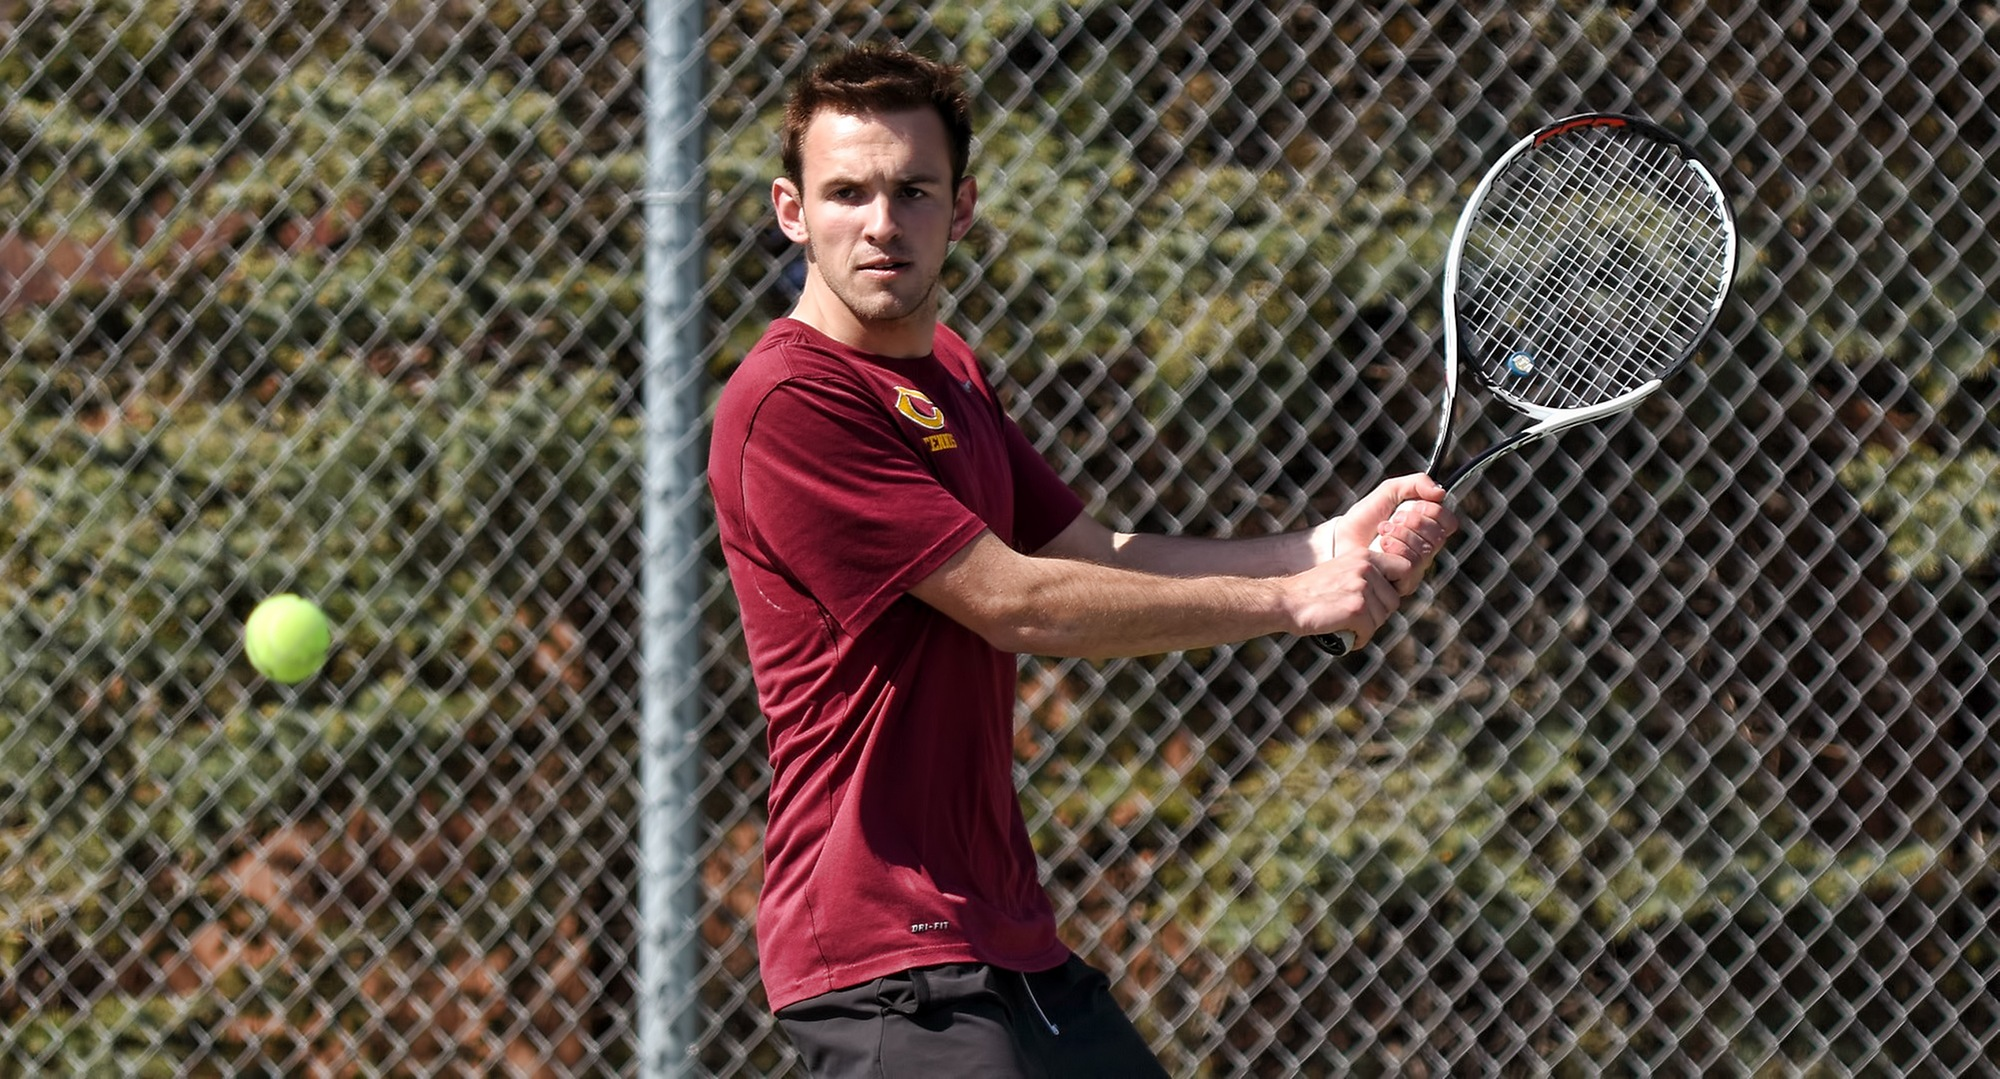 Senior David Youngs won his singles match against a DII opponent from Augustana (S.D.) during the Cobbers' annual I-29 Battle with the Vikings and UND.